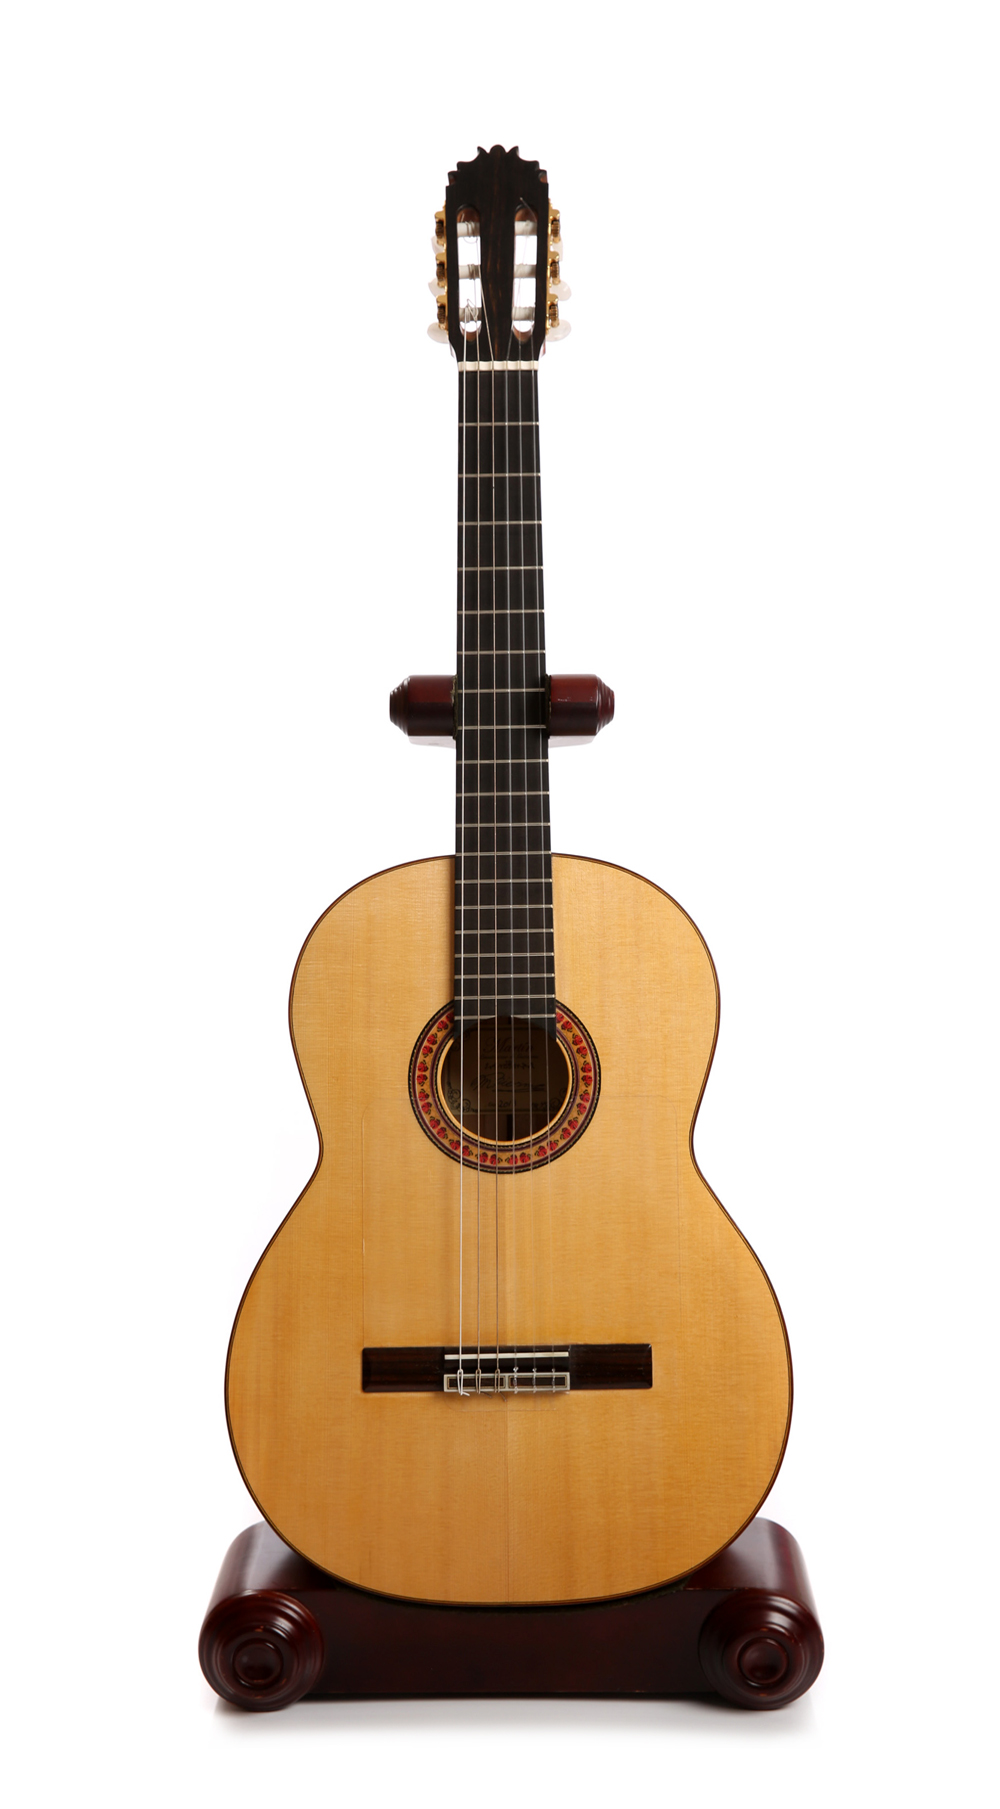 Martin flamenco guitar blanca 2013 No. 45